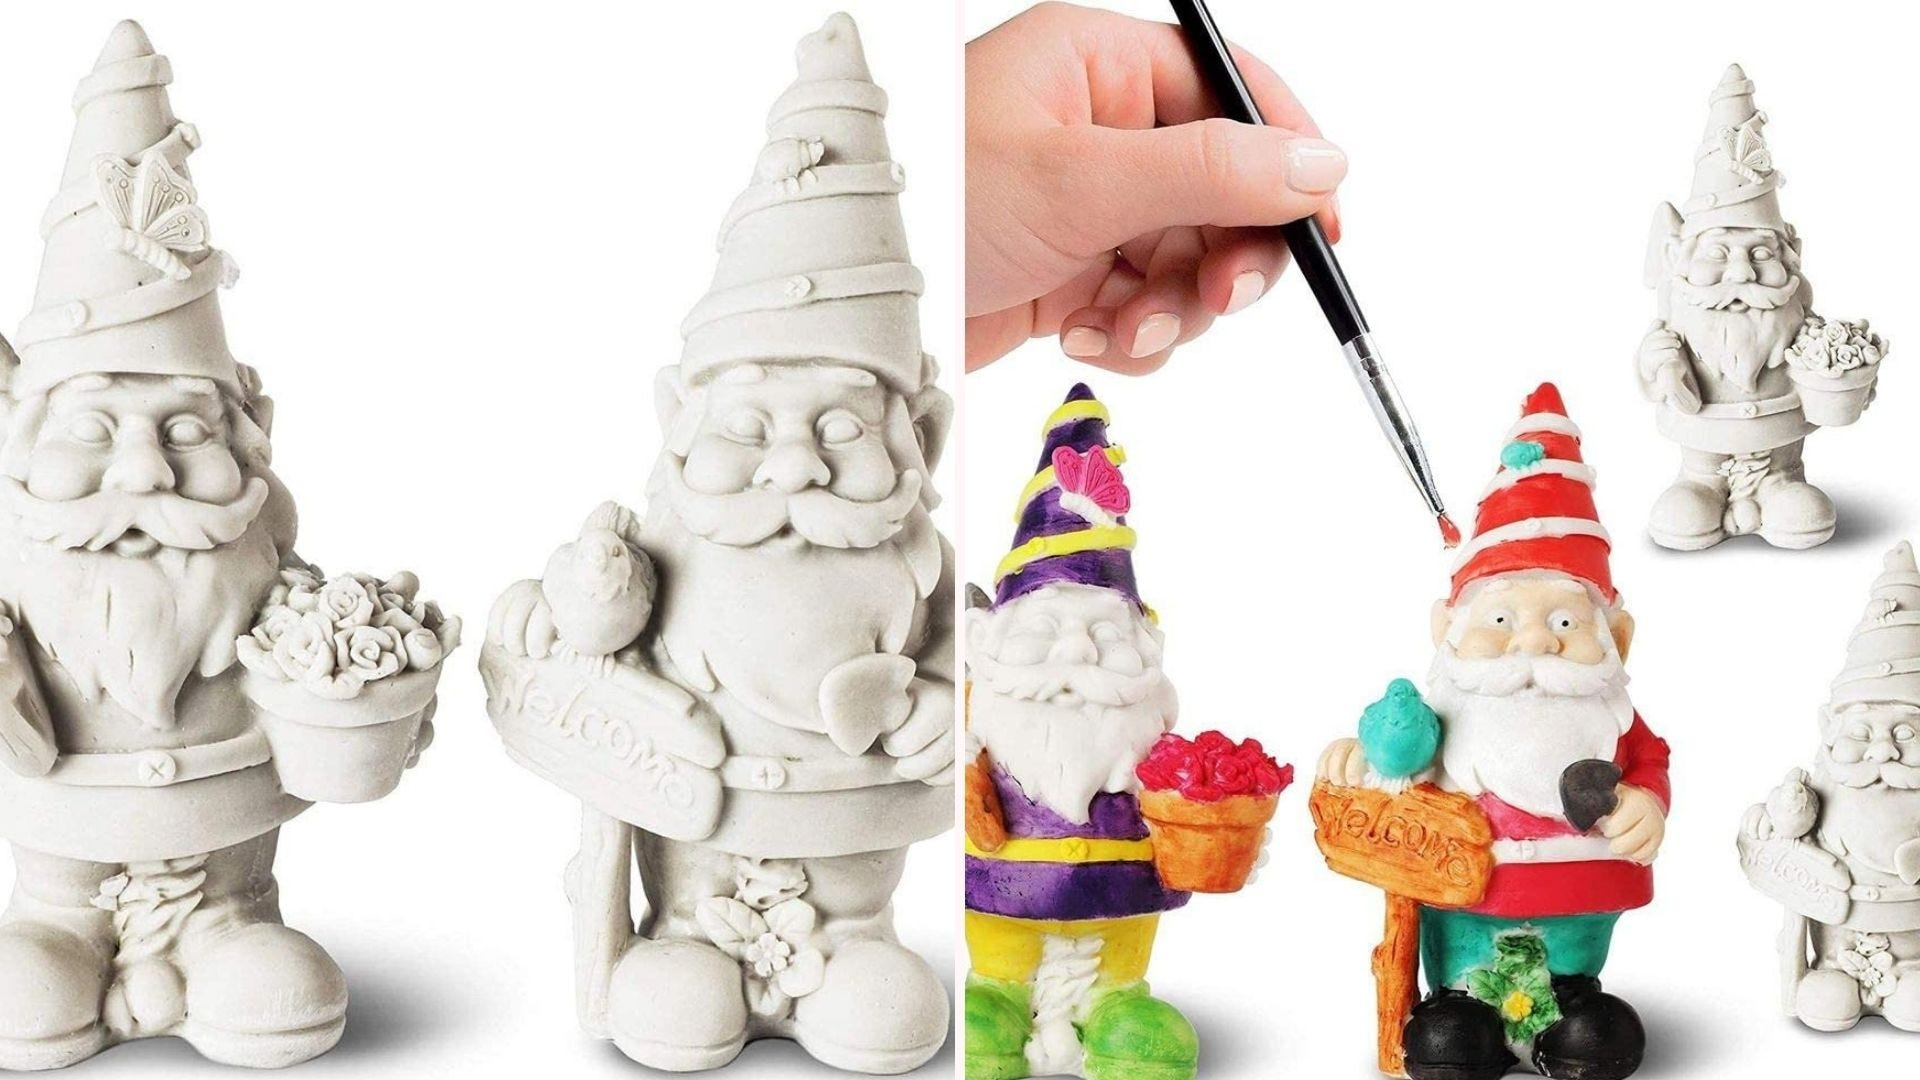 Hand paining a garden gnome. Four gnomes shown, two unpainted